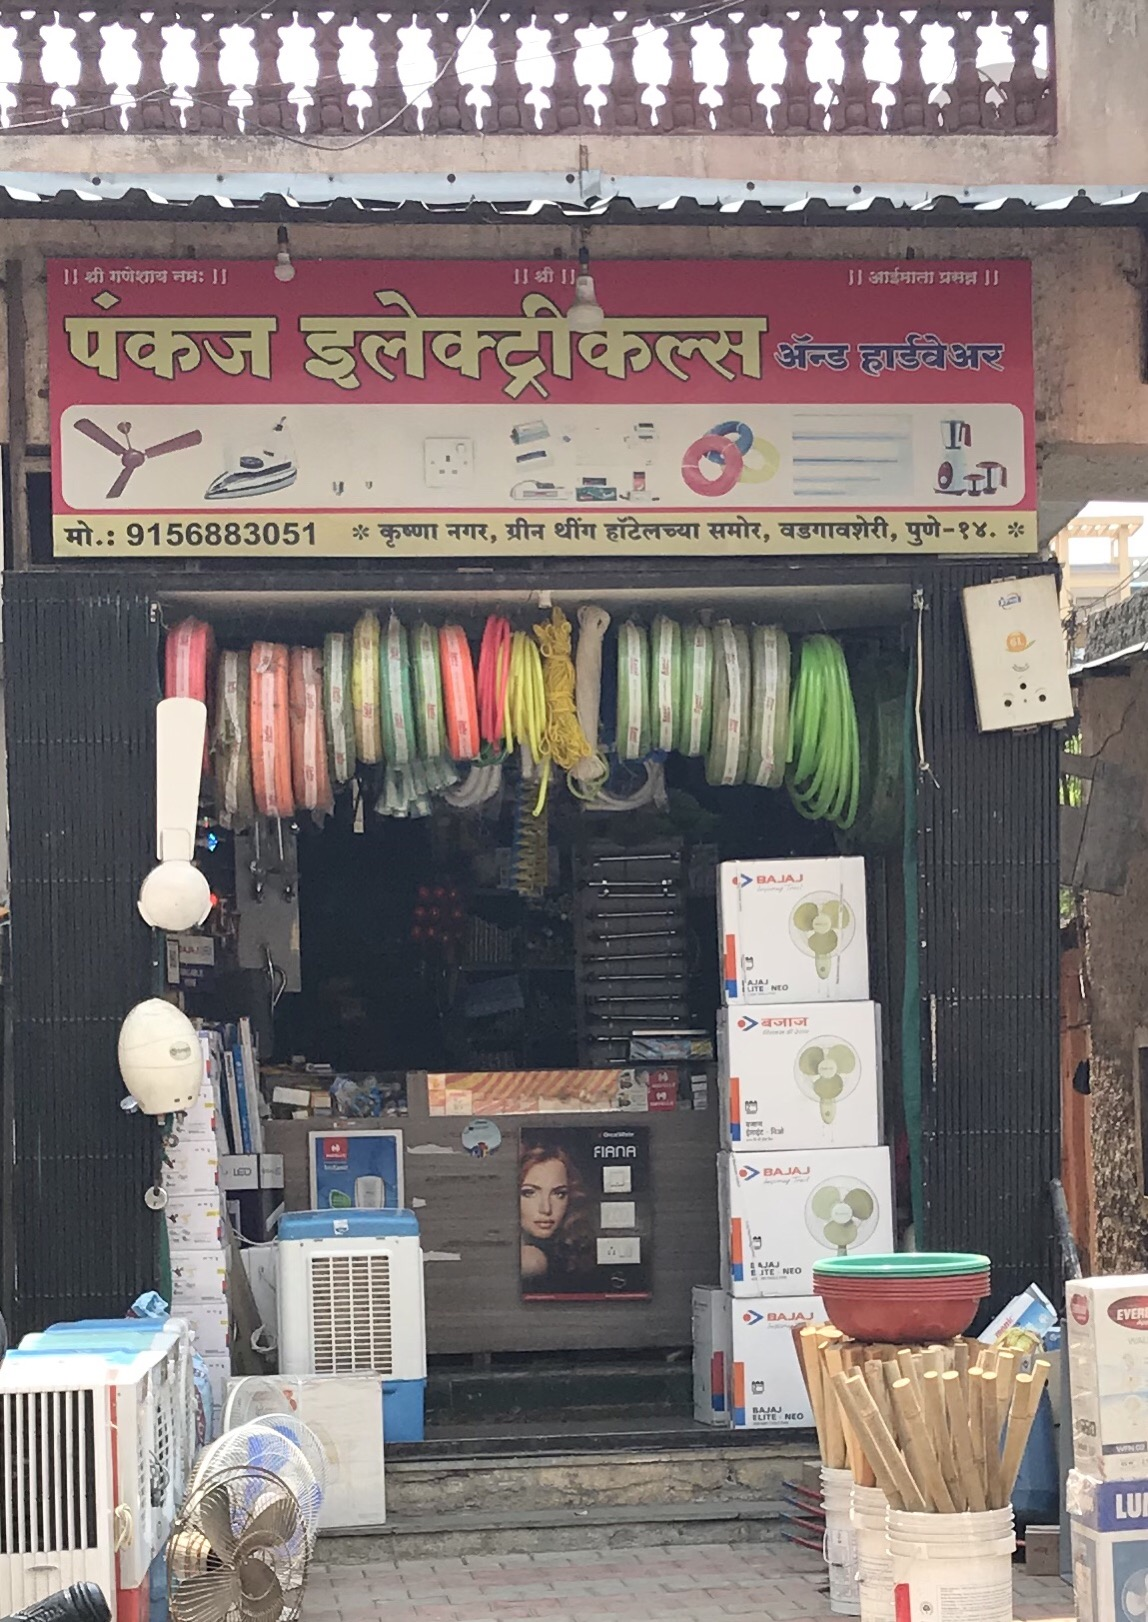 Pankaj Electricals Electrical And Sanitary in Wadgoan Sheri Pune